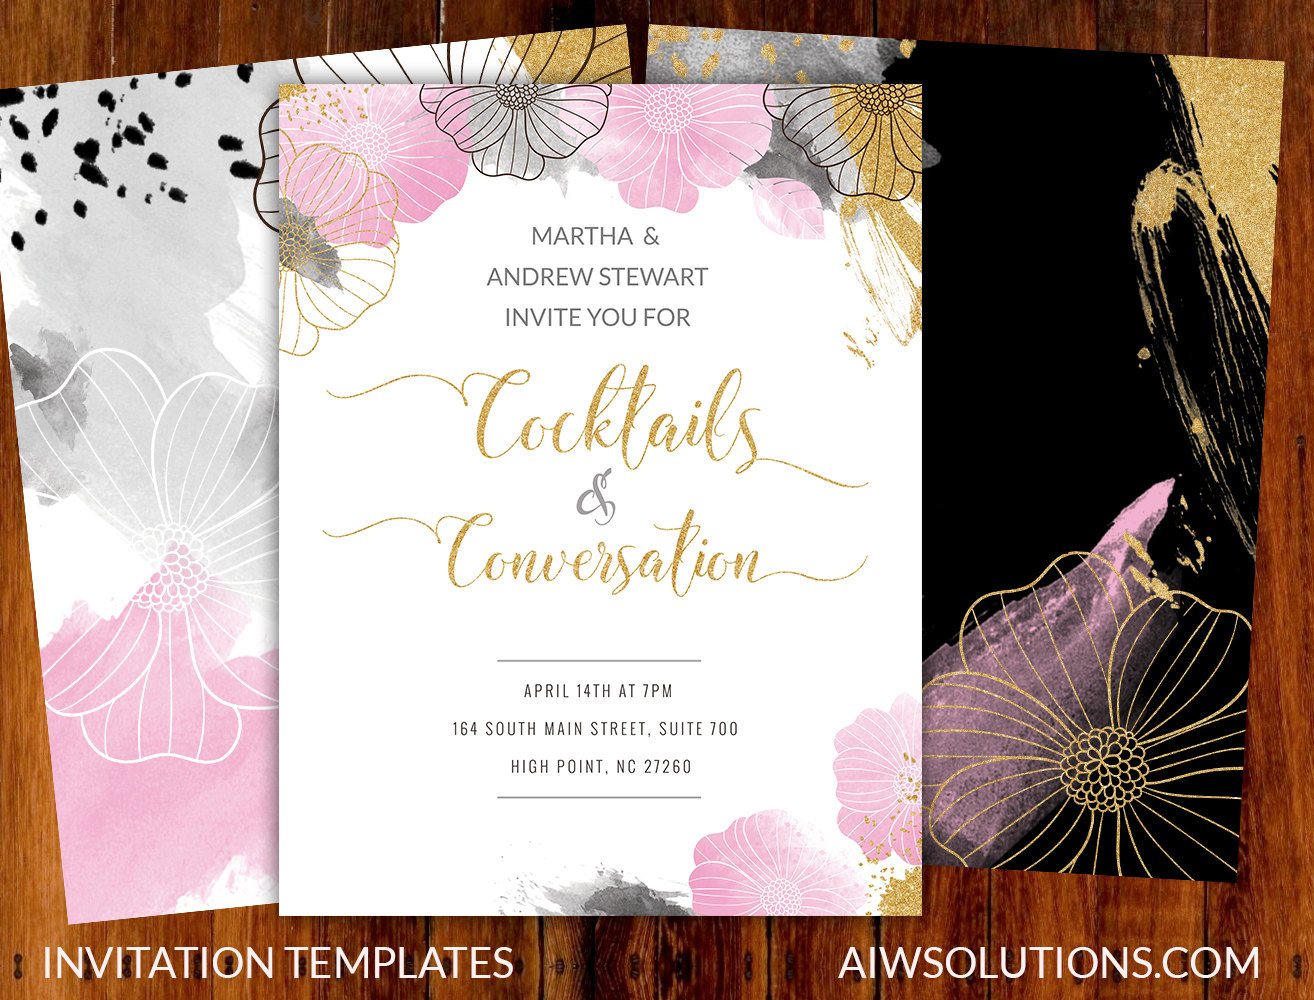 Invitations Event Templatesave The Date Template Flyer Template - Save the date flyer template